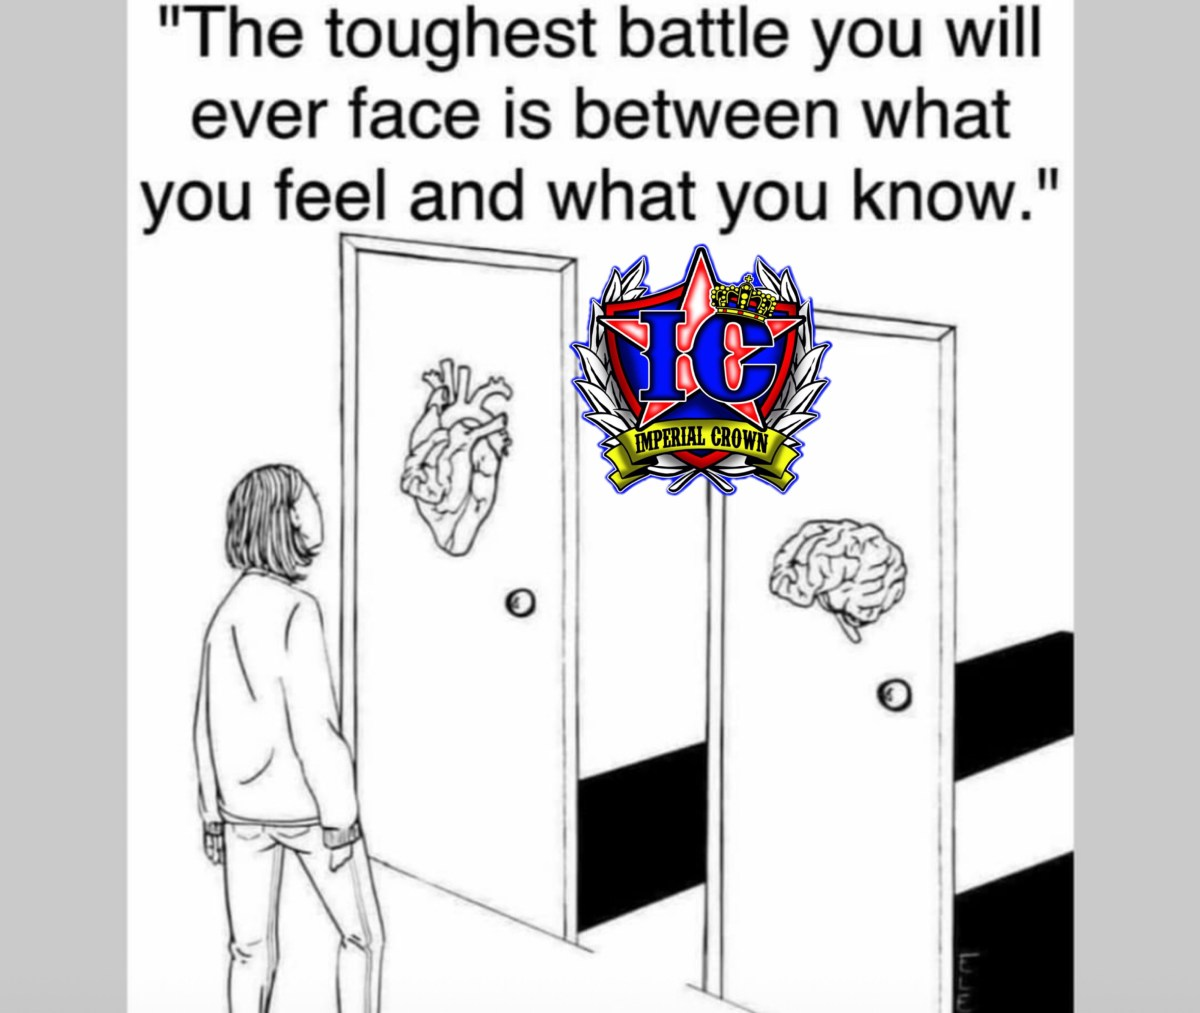 The toughest battle you will ever face is between what you feel and what you know.